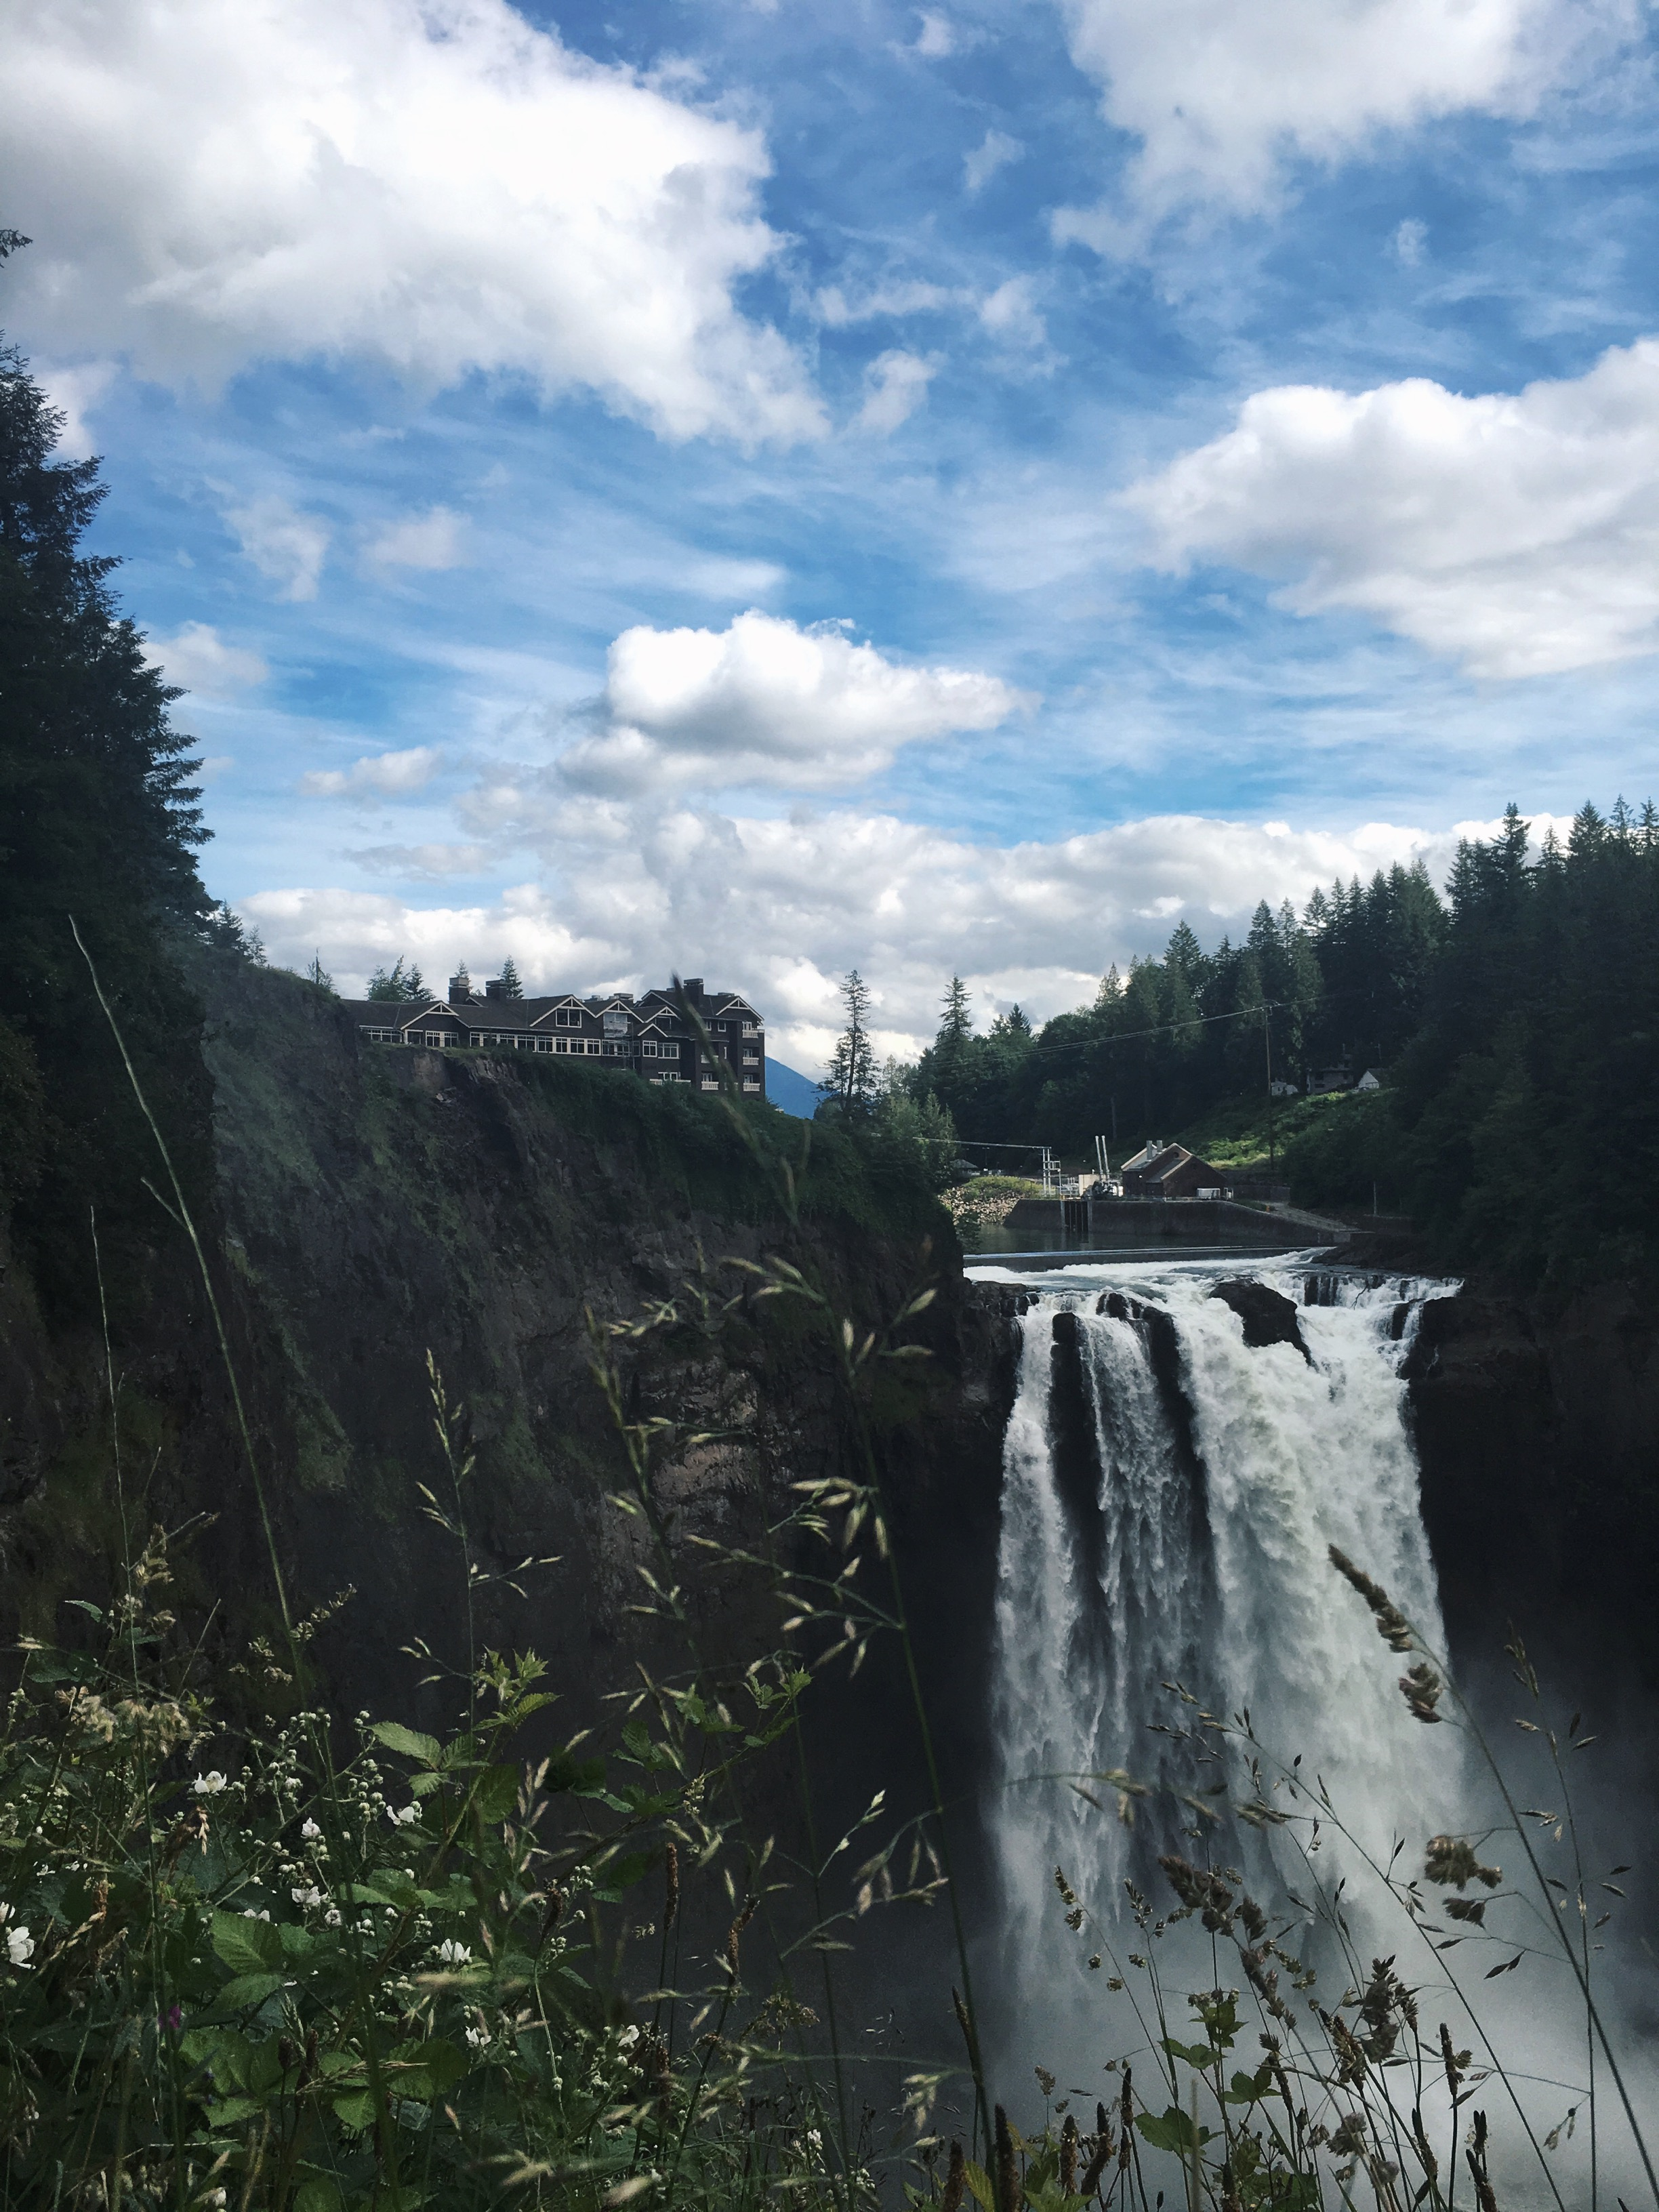 The 268ft Snoqualmie Falls, in all their glory. I took this at the top of the falls, on one of the upper viewpoints.